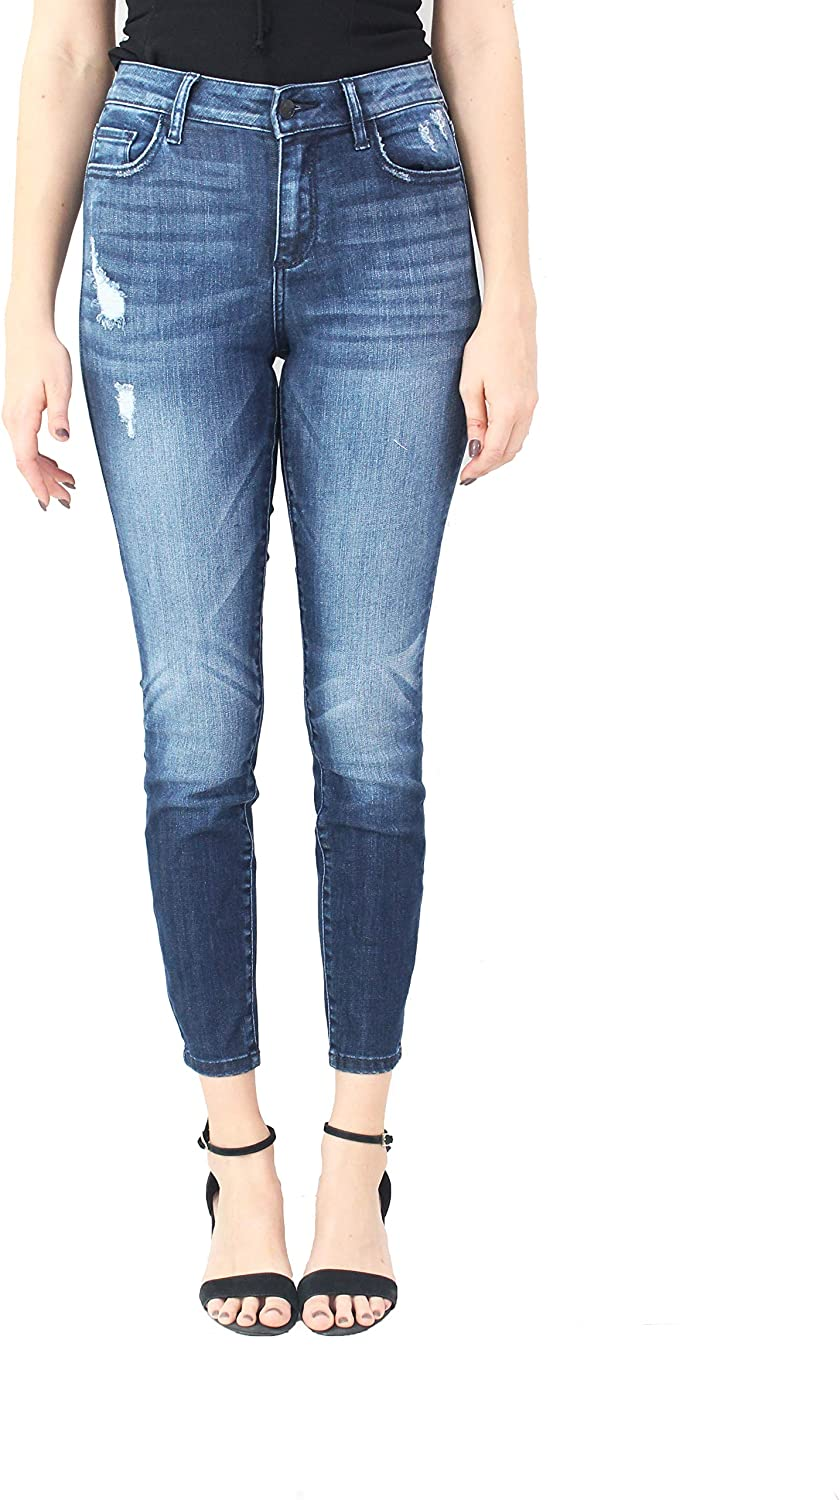 Cello Jeans Women Mid Rise Distress Crop Skinny Jeans